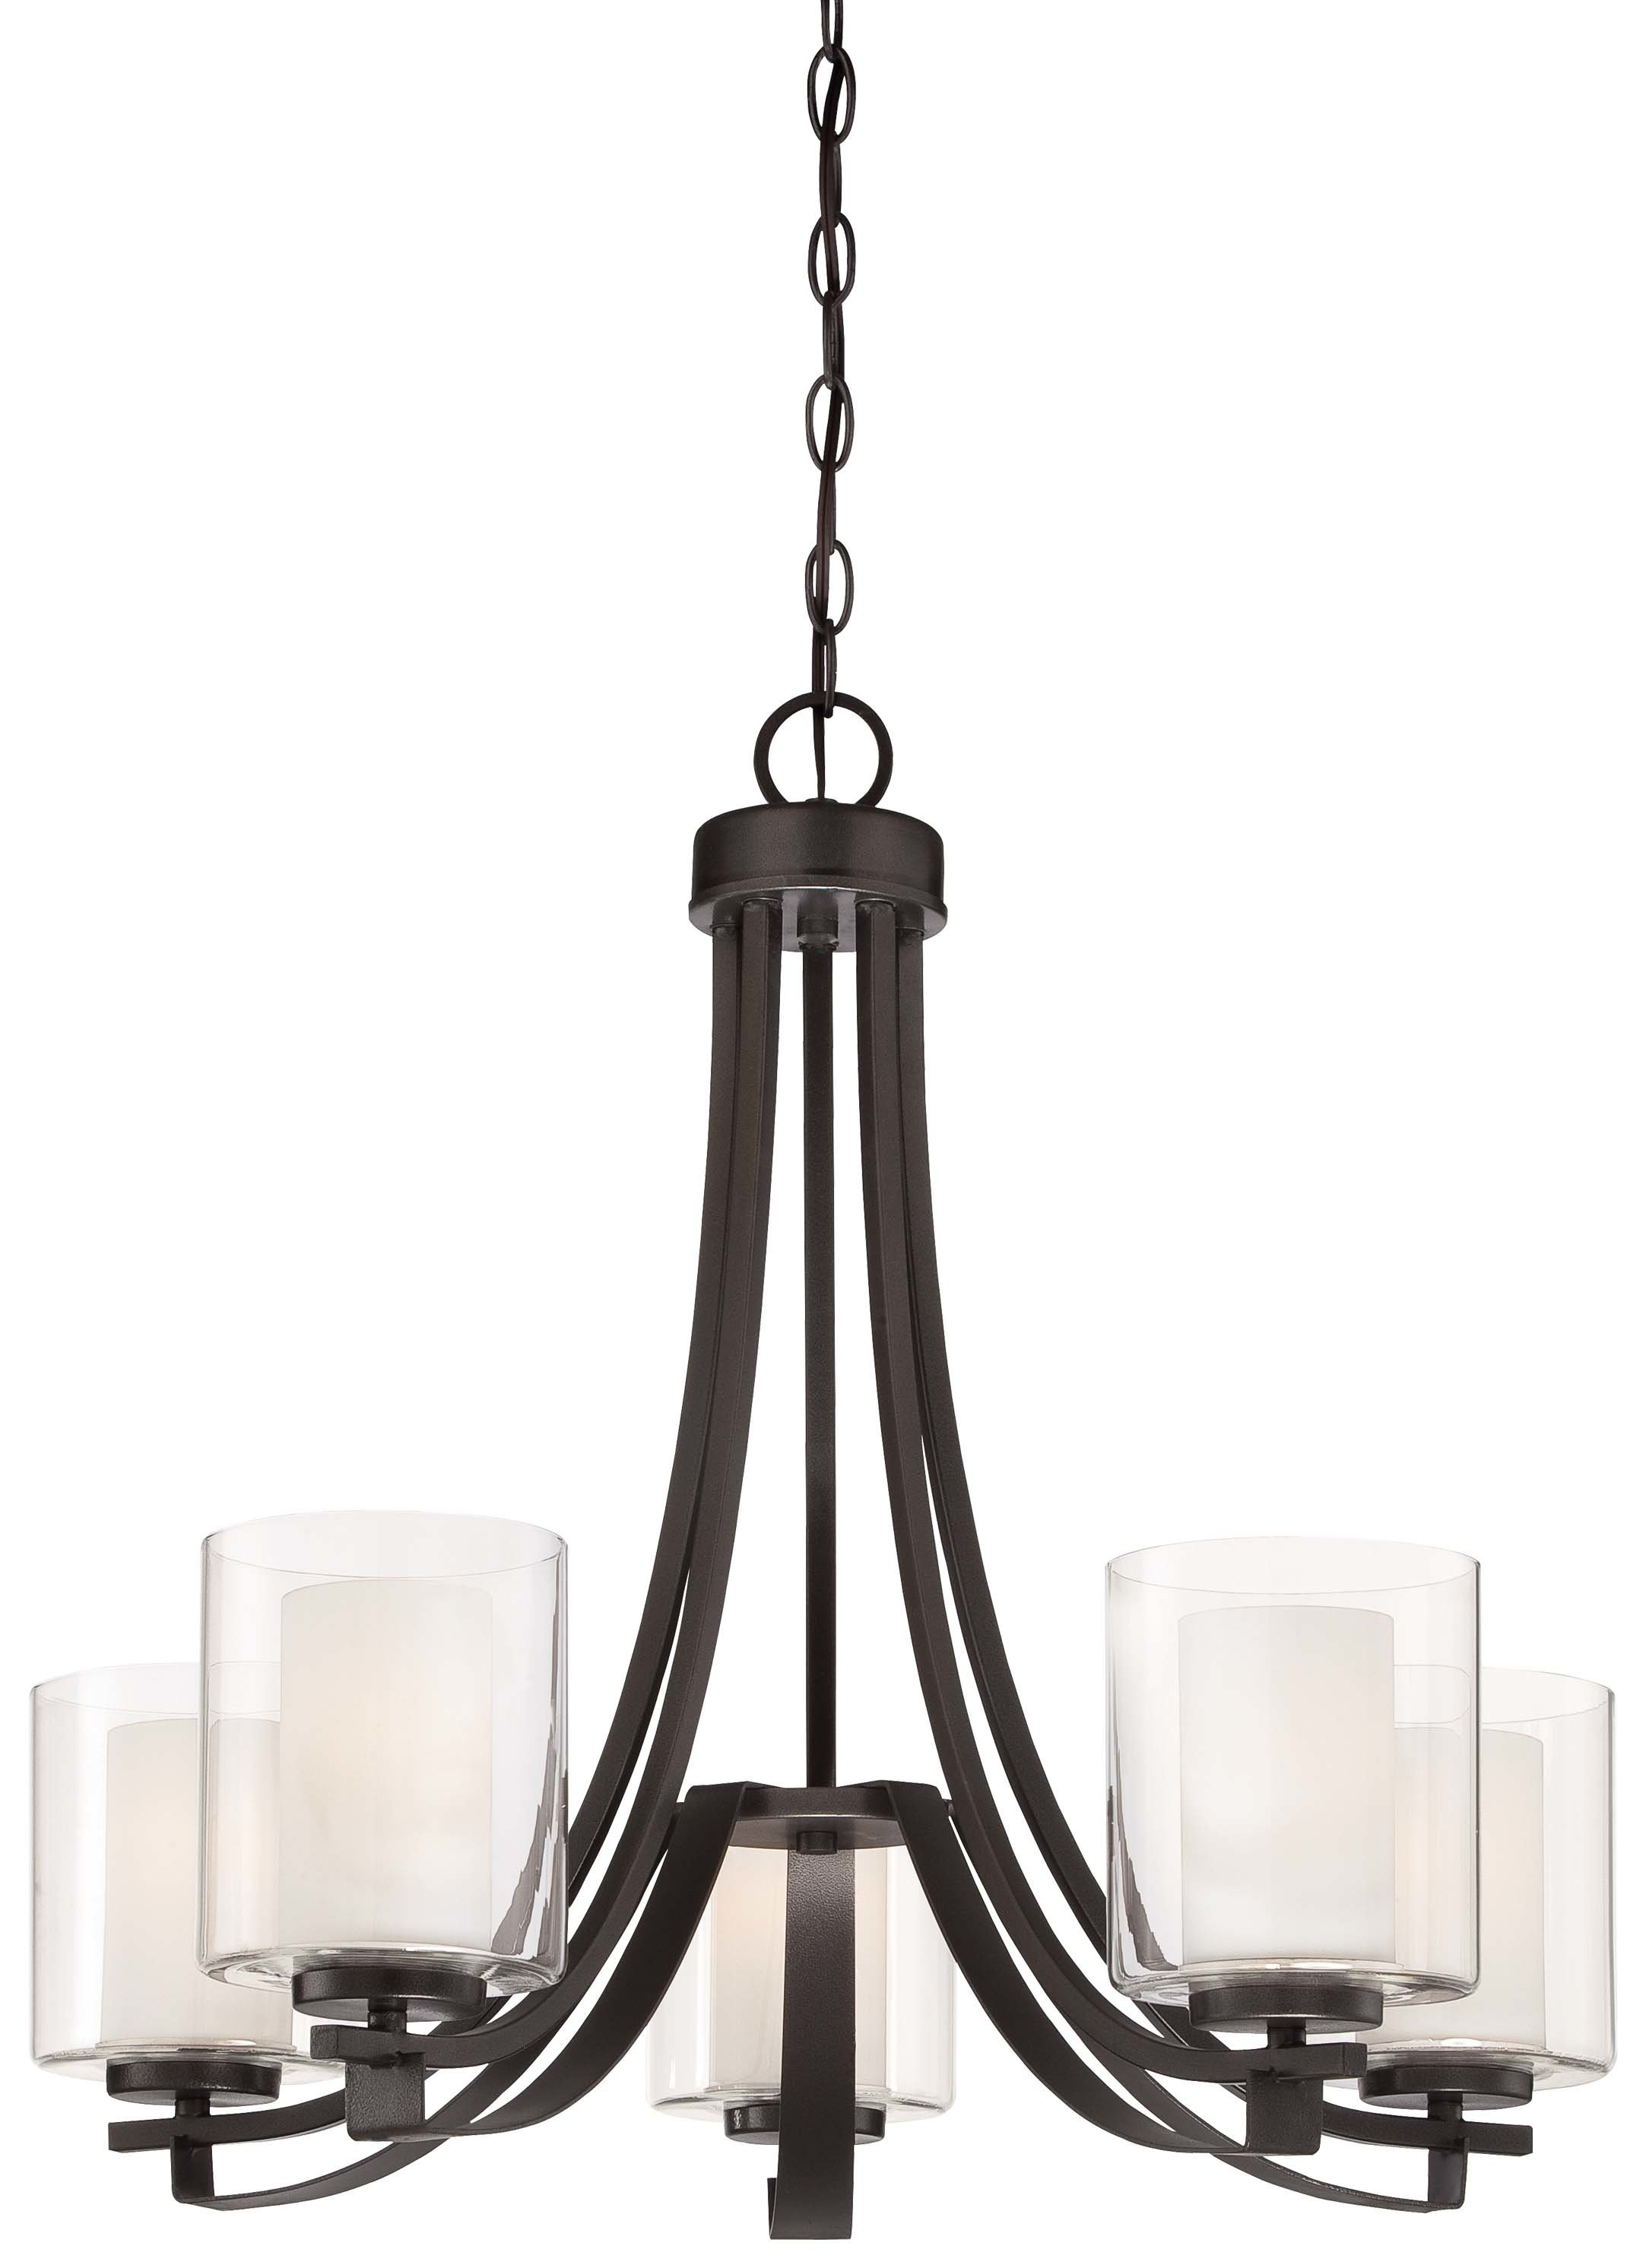 Ebern Designs Demby 5 Light Shaded Chandelier With Suki 5 Light Shaded Chandeliers (View 8 of 30)